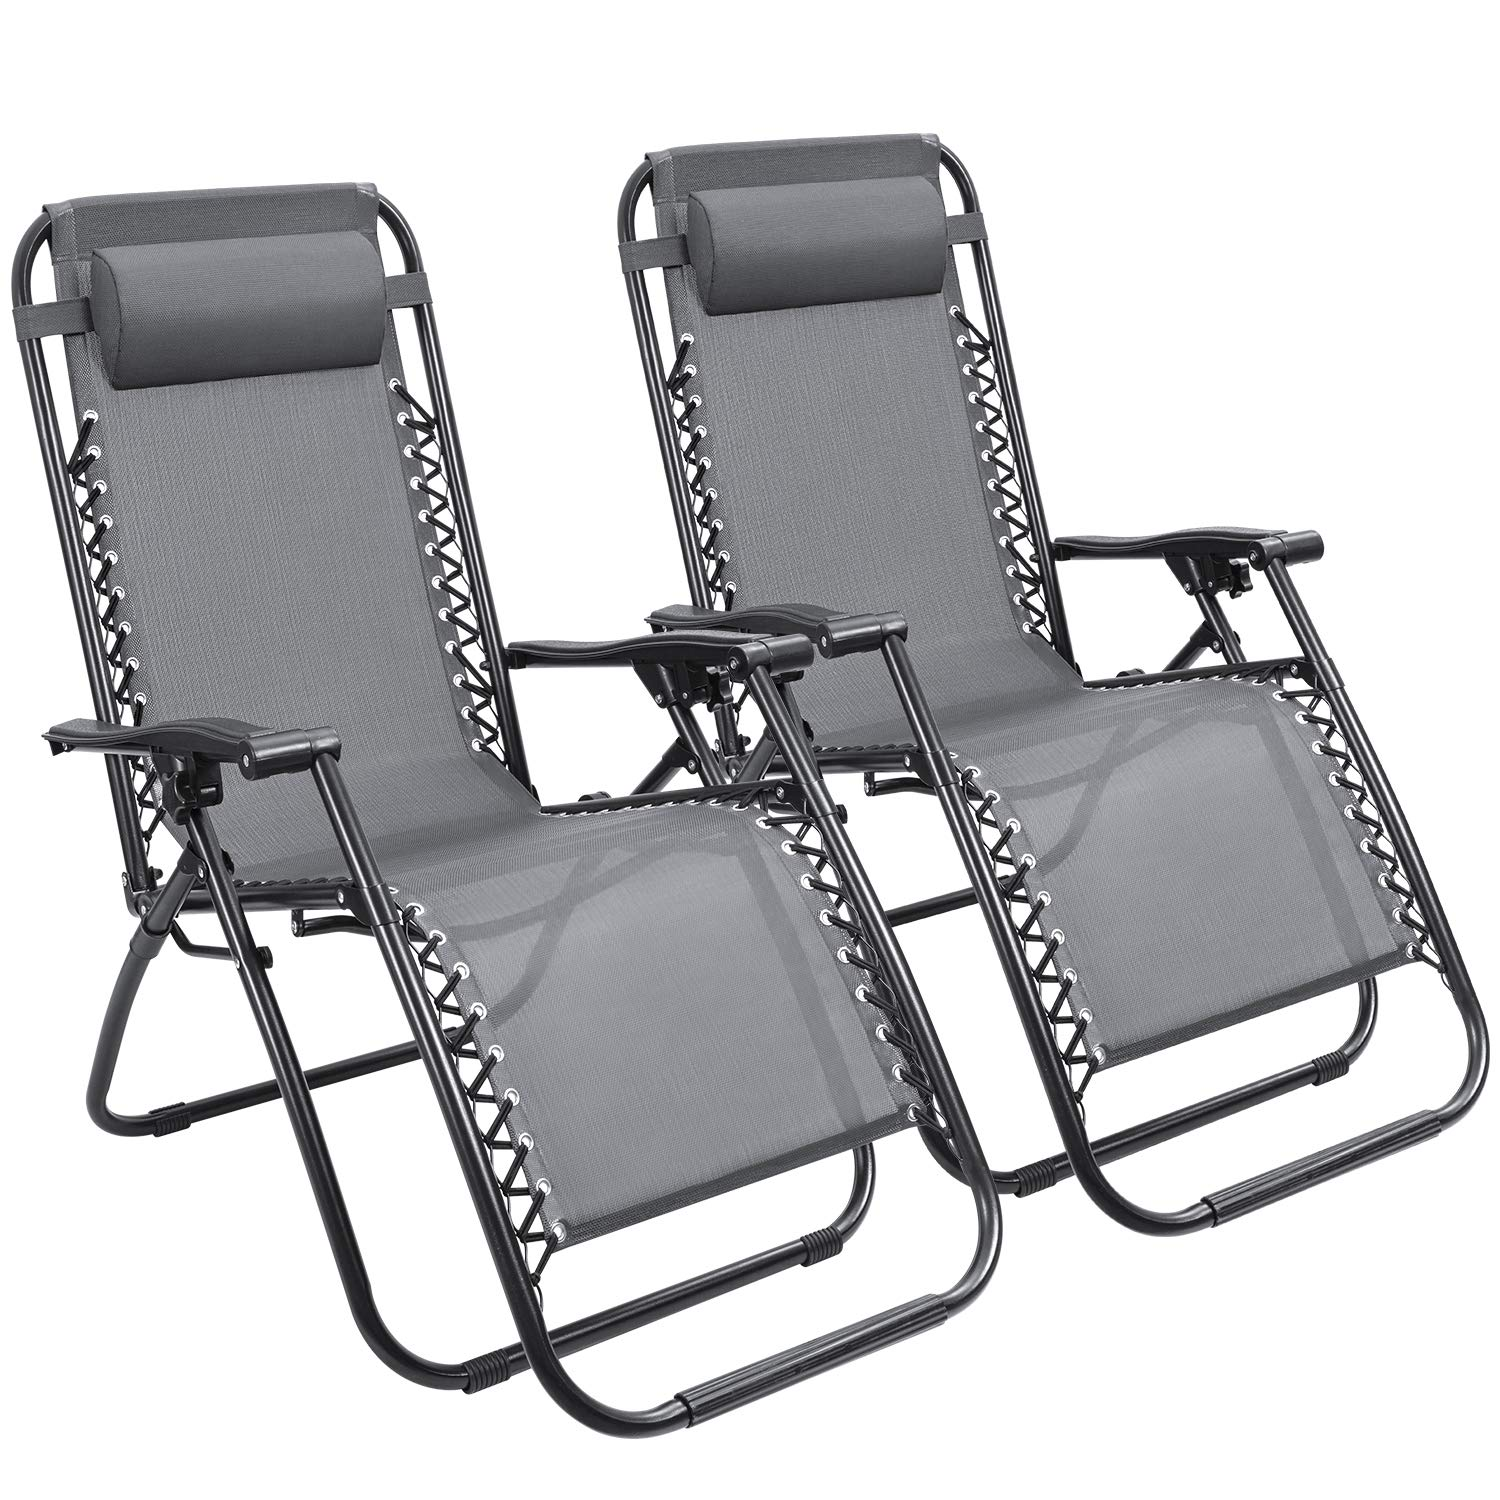 Devoko Patio Zero Gravity Chair Outdoor Folding Adjustable Reclining Chairs Pool Side Using Lawn Lounge Chair with Pillow Set of 2 (Grey)